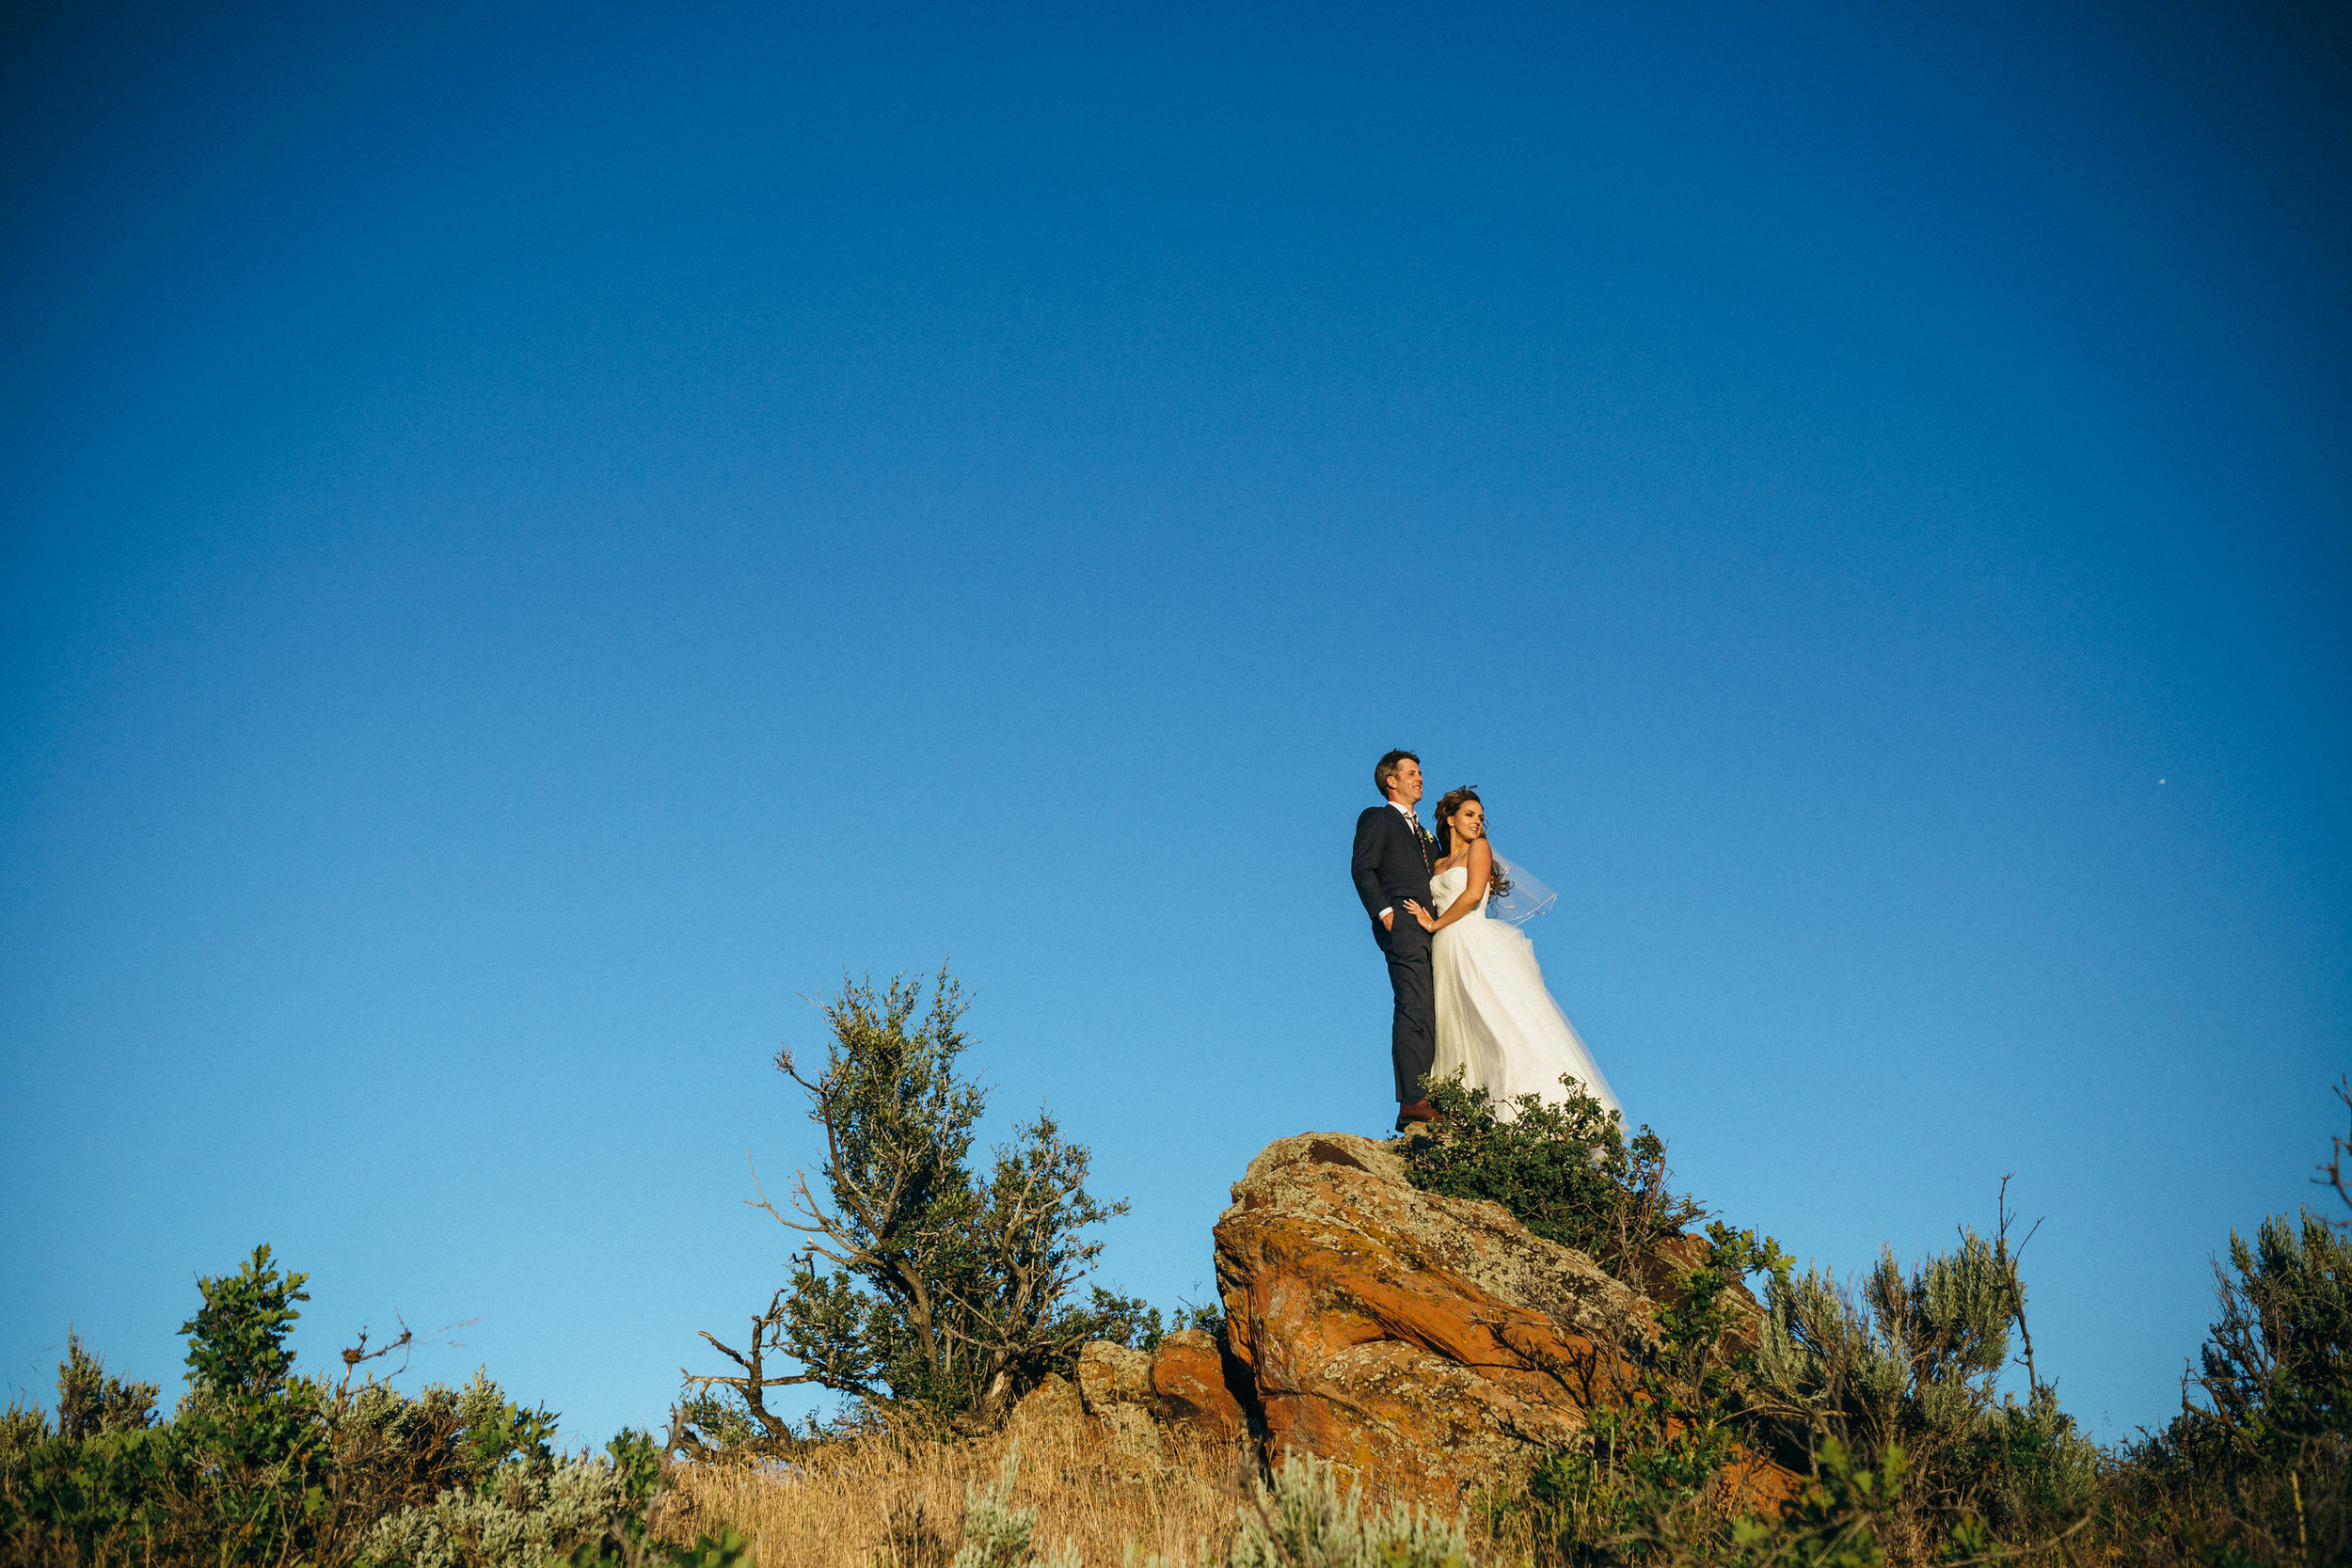 backyard wedding Heber City Utah destination wedding portland oregon photography0124.JPG